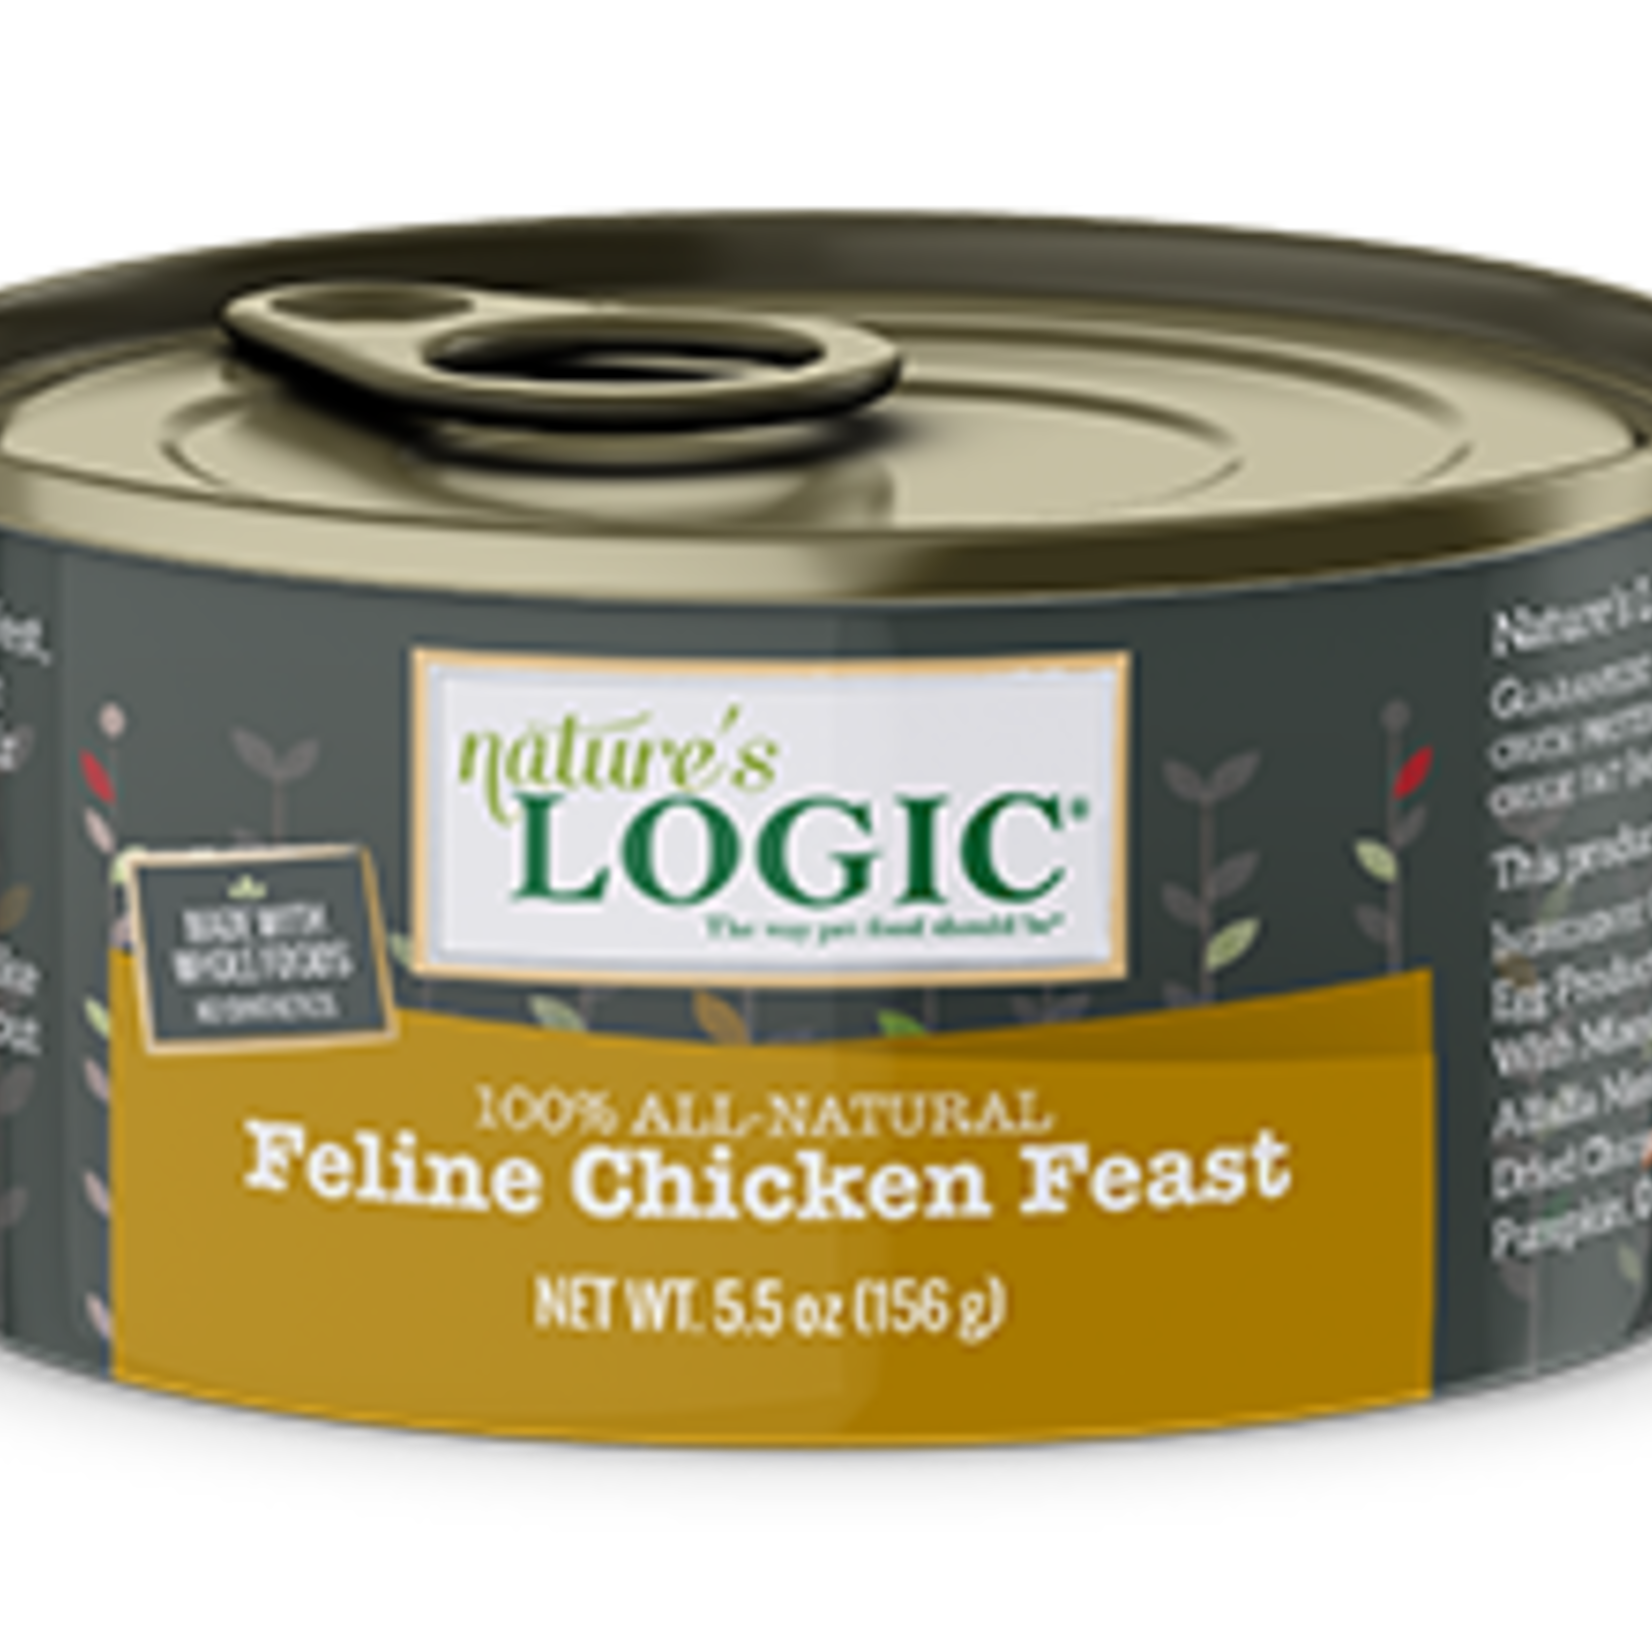 Natures Logic Natures Logic Cat Grain Free Chicken Feast 5.5 OZ